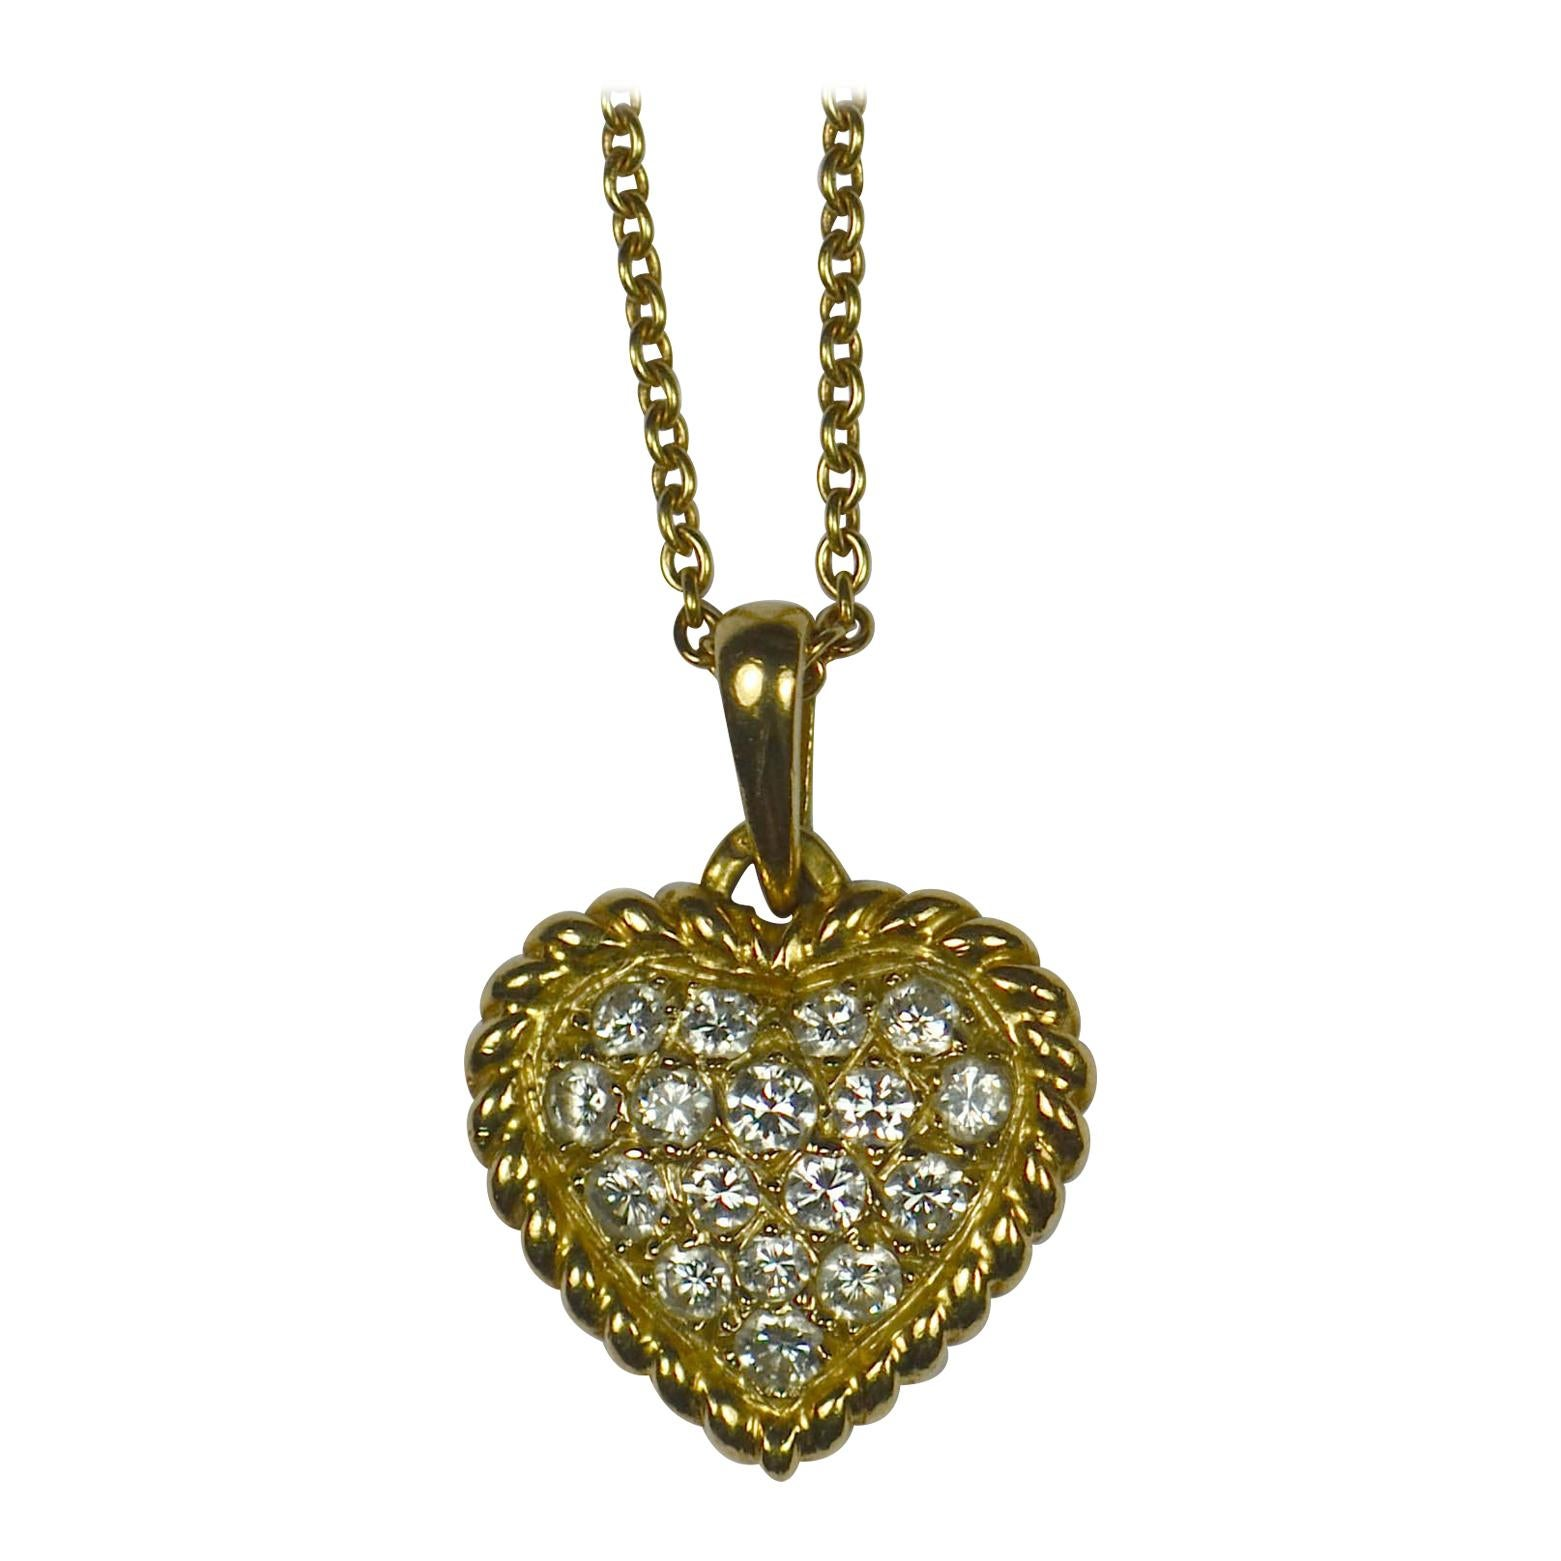 Van Cleef & Arpels Diamond Gold Heart Pendant